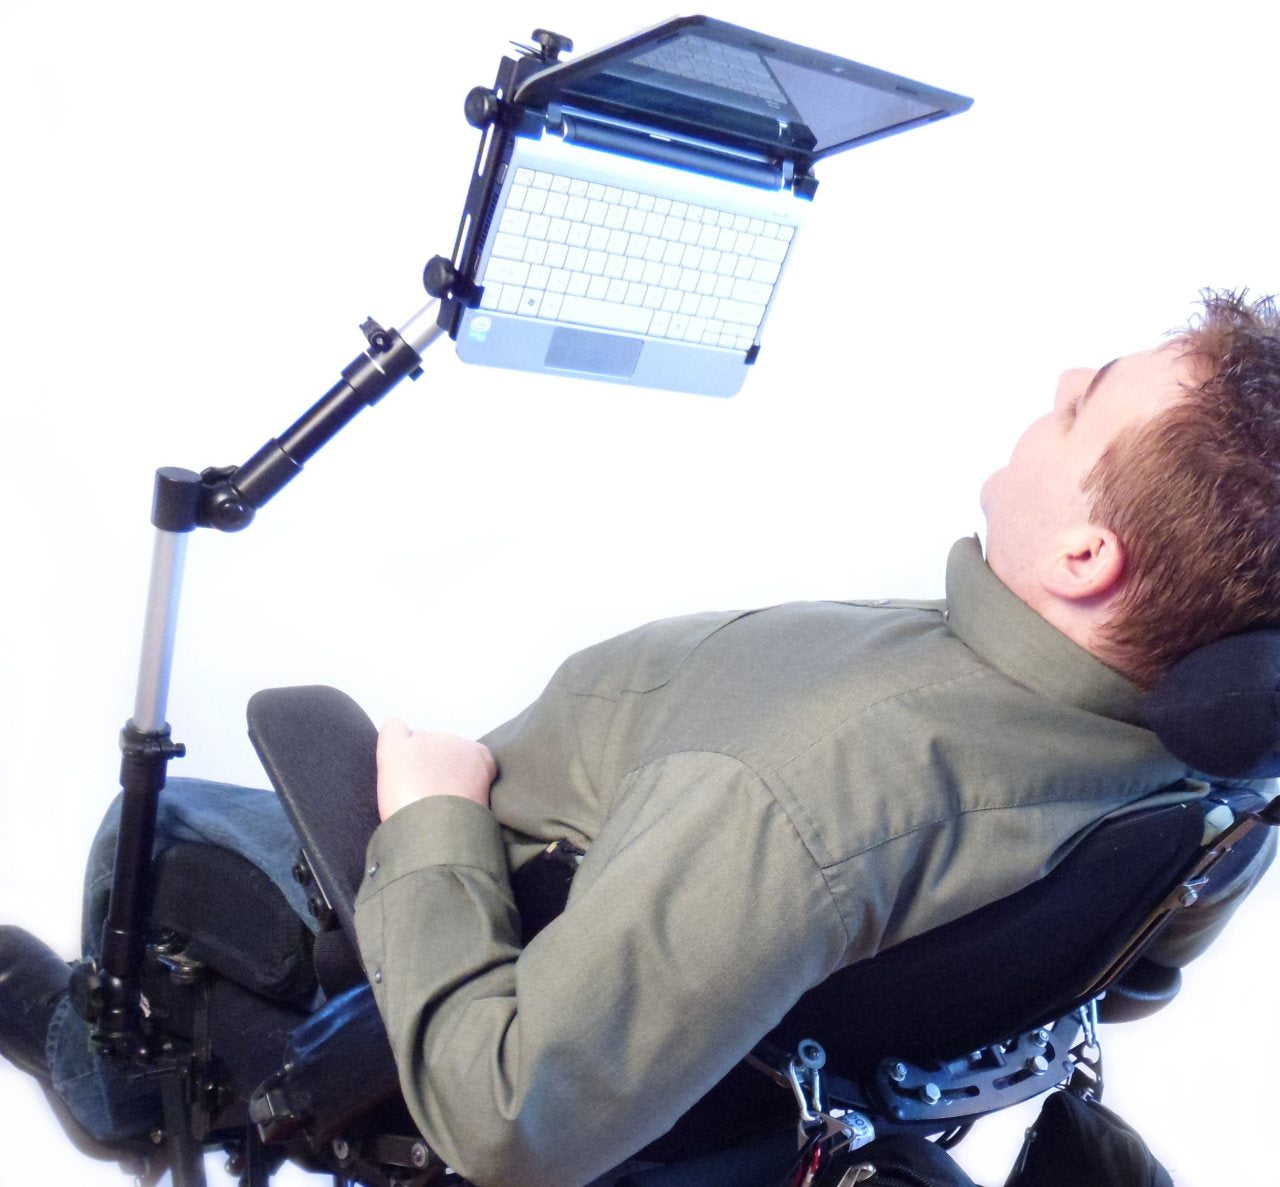 Roll Arm Extreme Positioning Holding a Laptop Overhead While Reclining